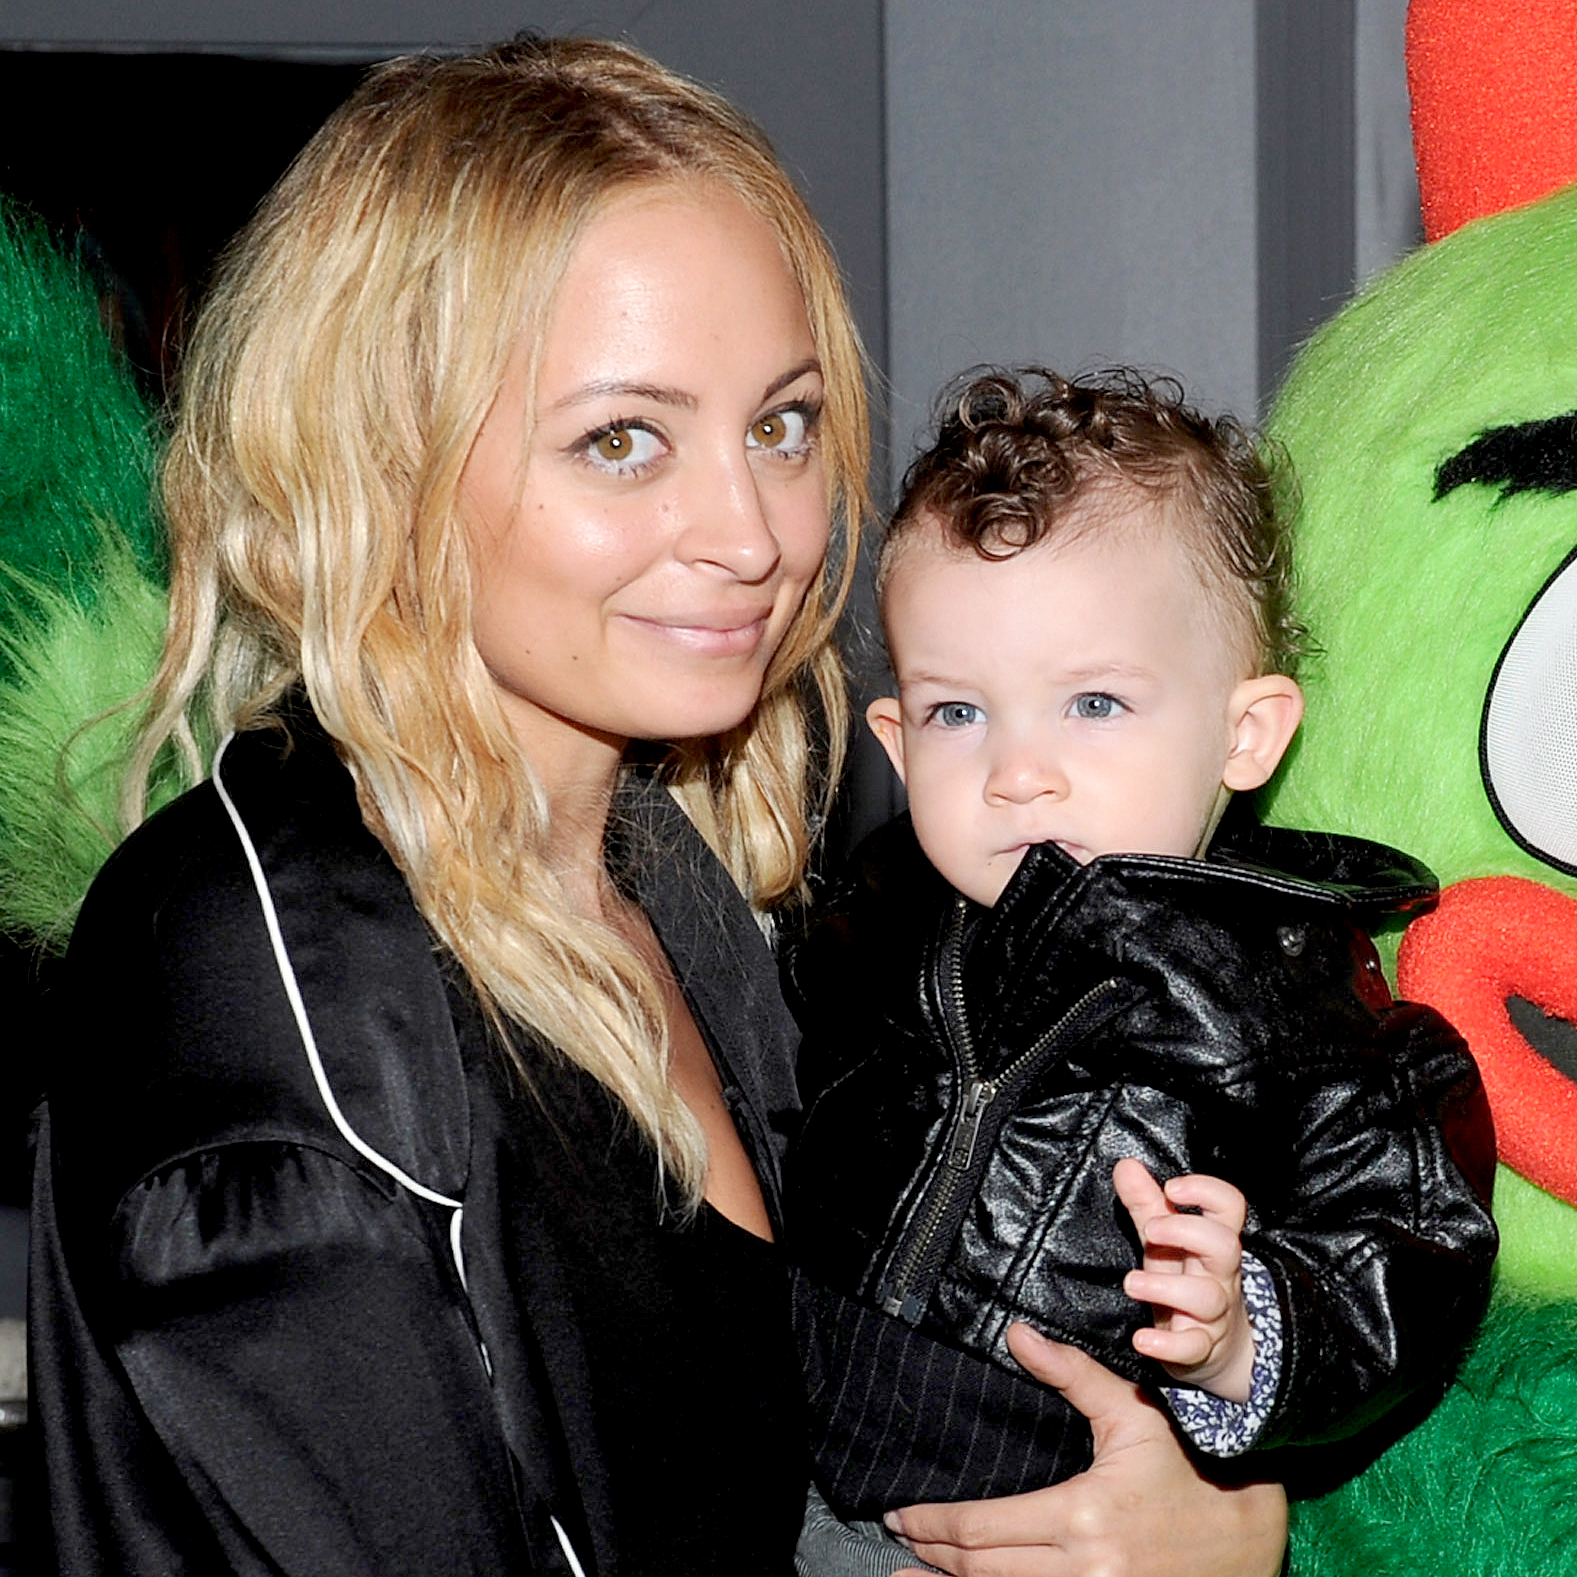 Sparrow-Madden-Nicole-Richie - After naming their daughter Harlow Winter Kate when she arrived in 2009, Nicole Richie and Joel Madden chose Sparrow James Midnight for their son's moniker one year later.